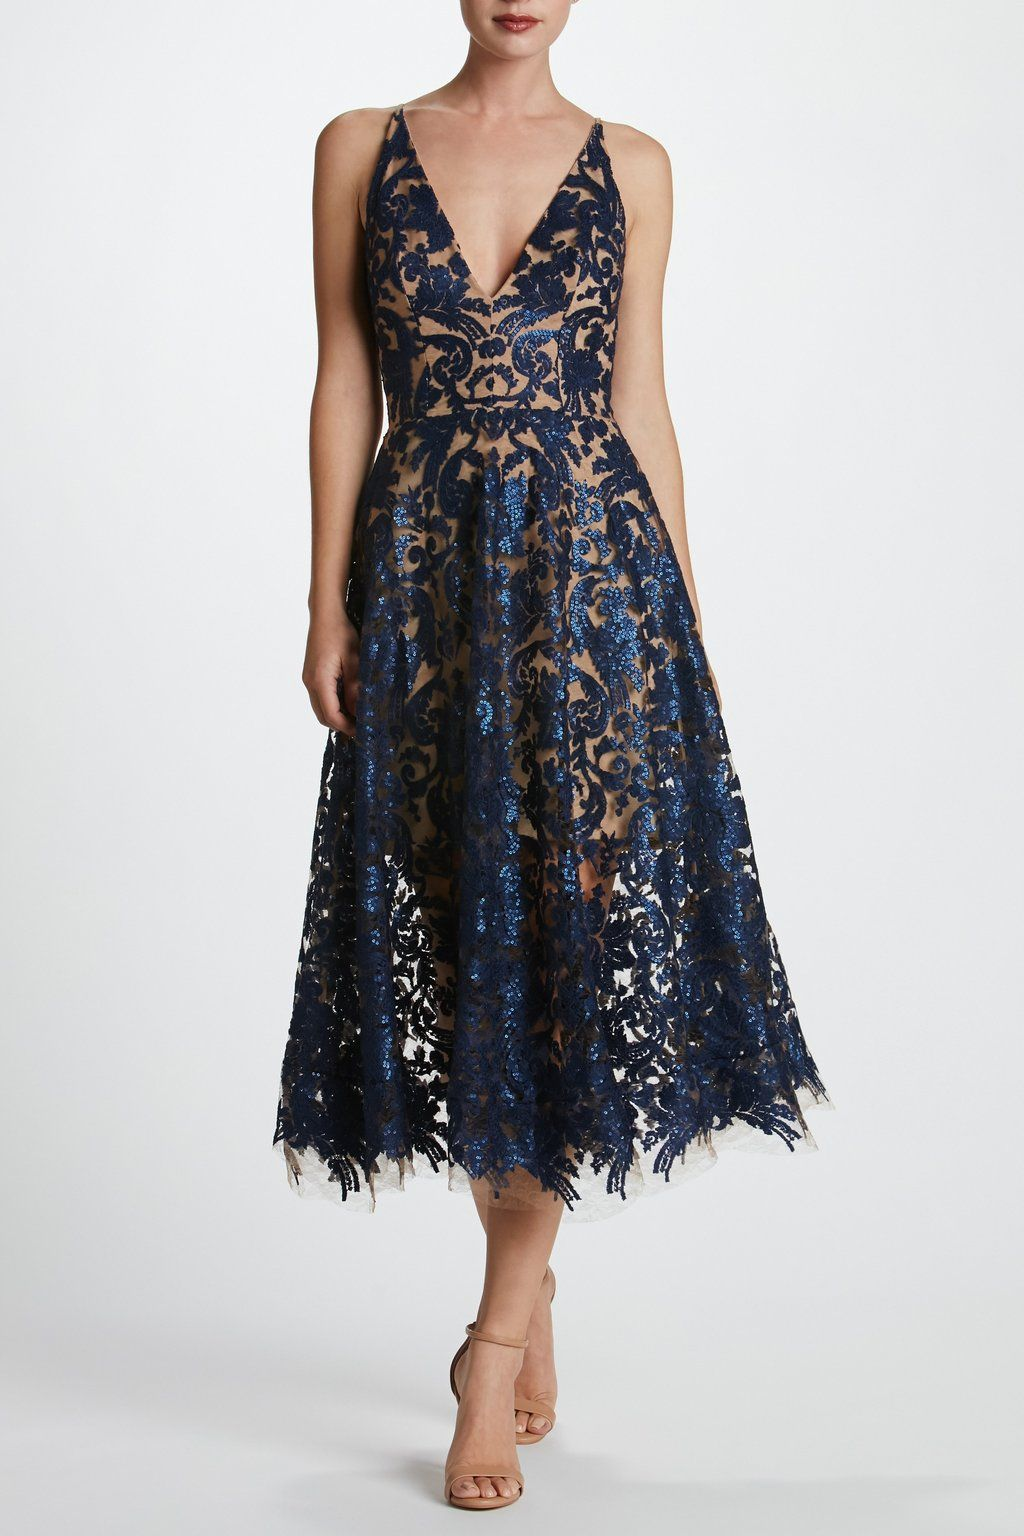 b80b23c875d Blair Sequin Lace Fit and Flare Midi Dress - FINAL in 2019